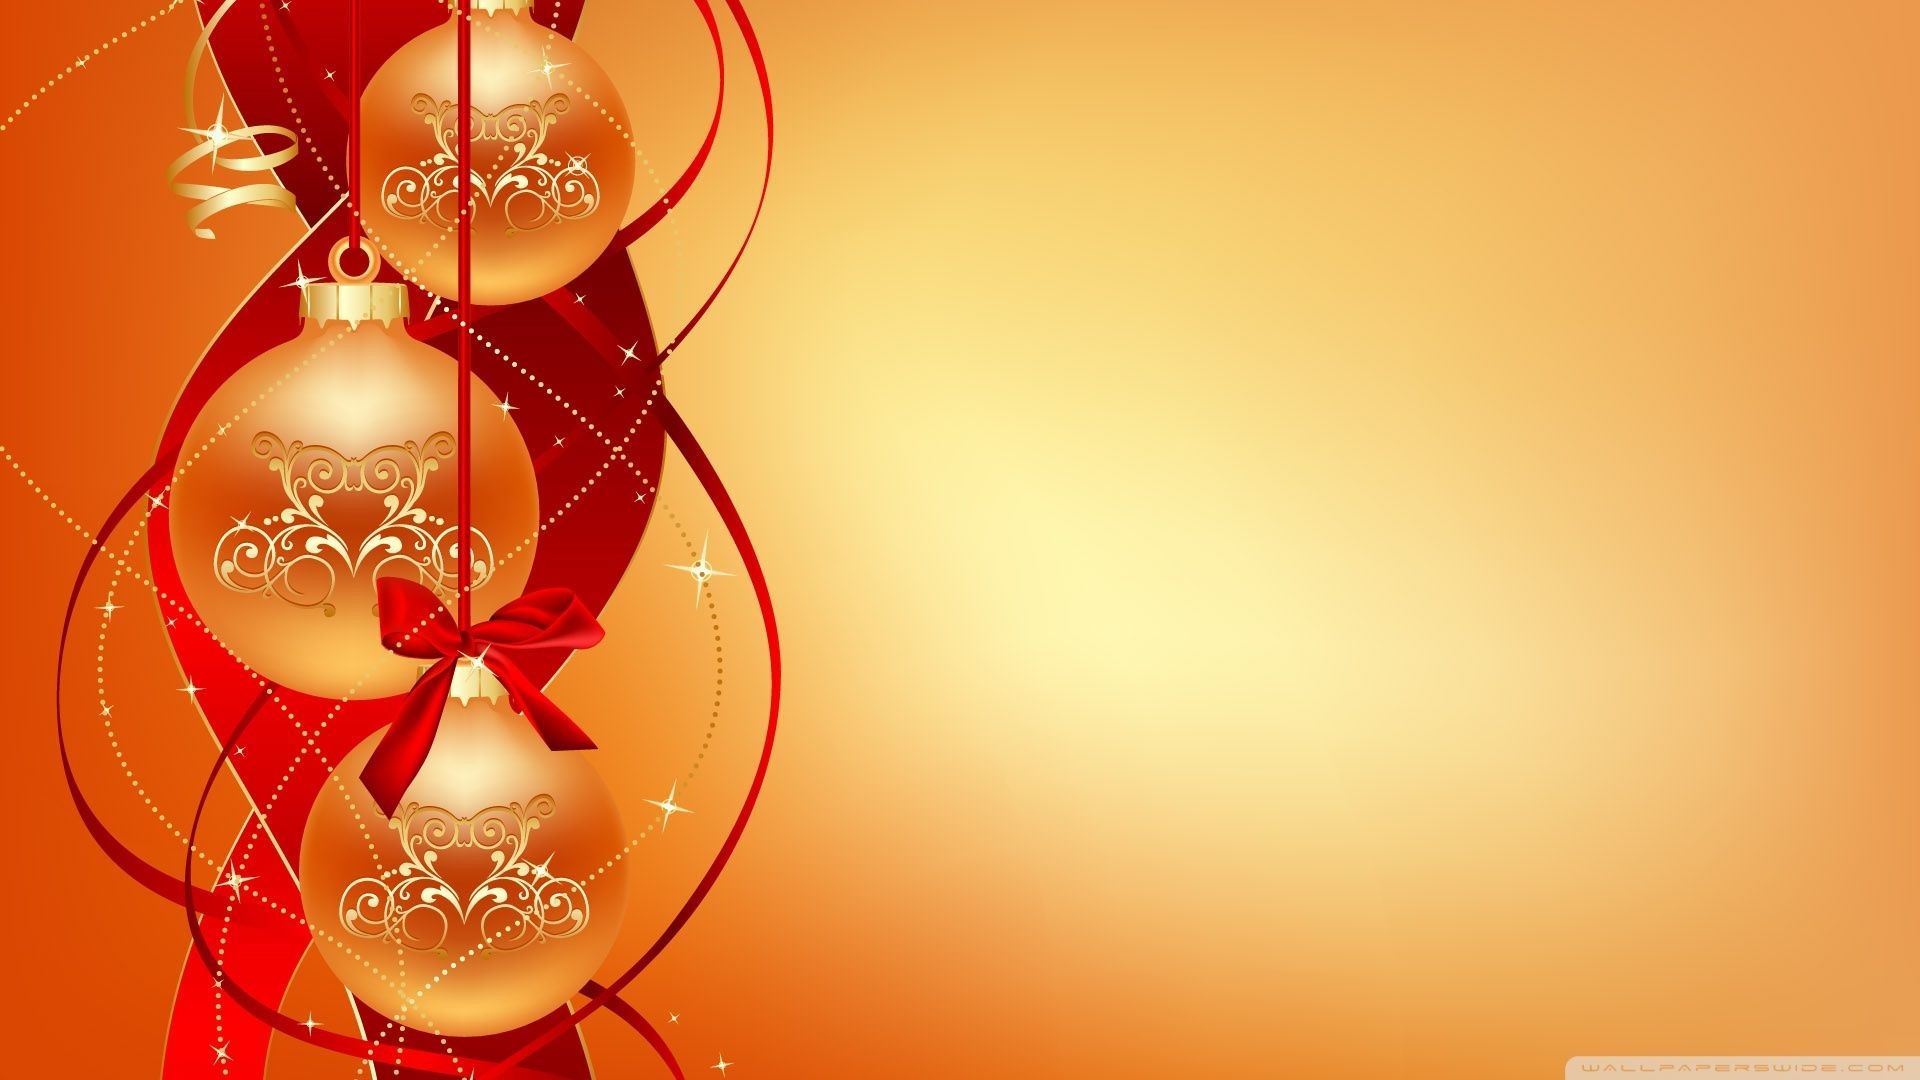 1920x1080 Christmas background merry wallpaper wallpaperswide